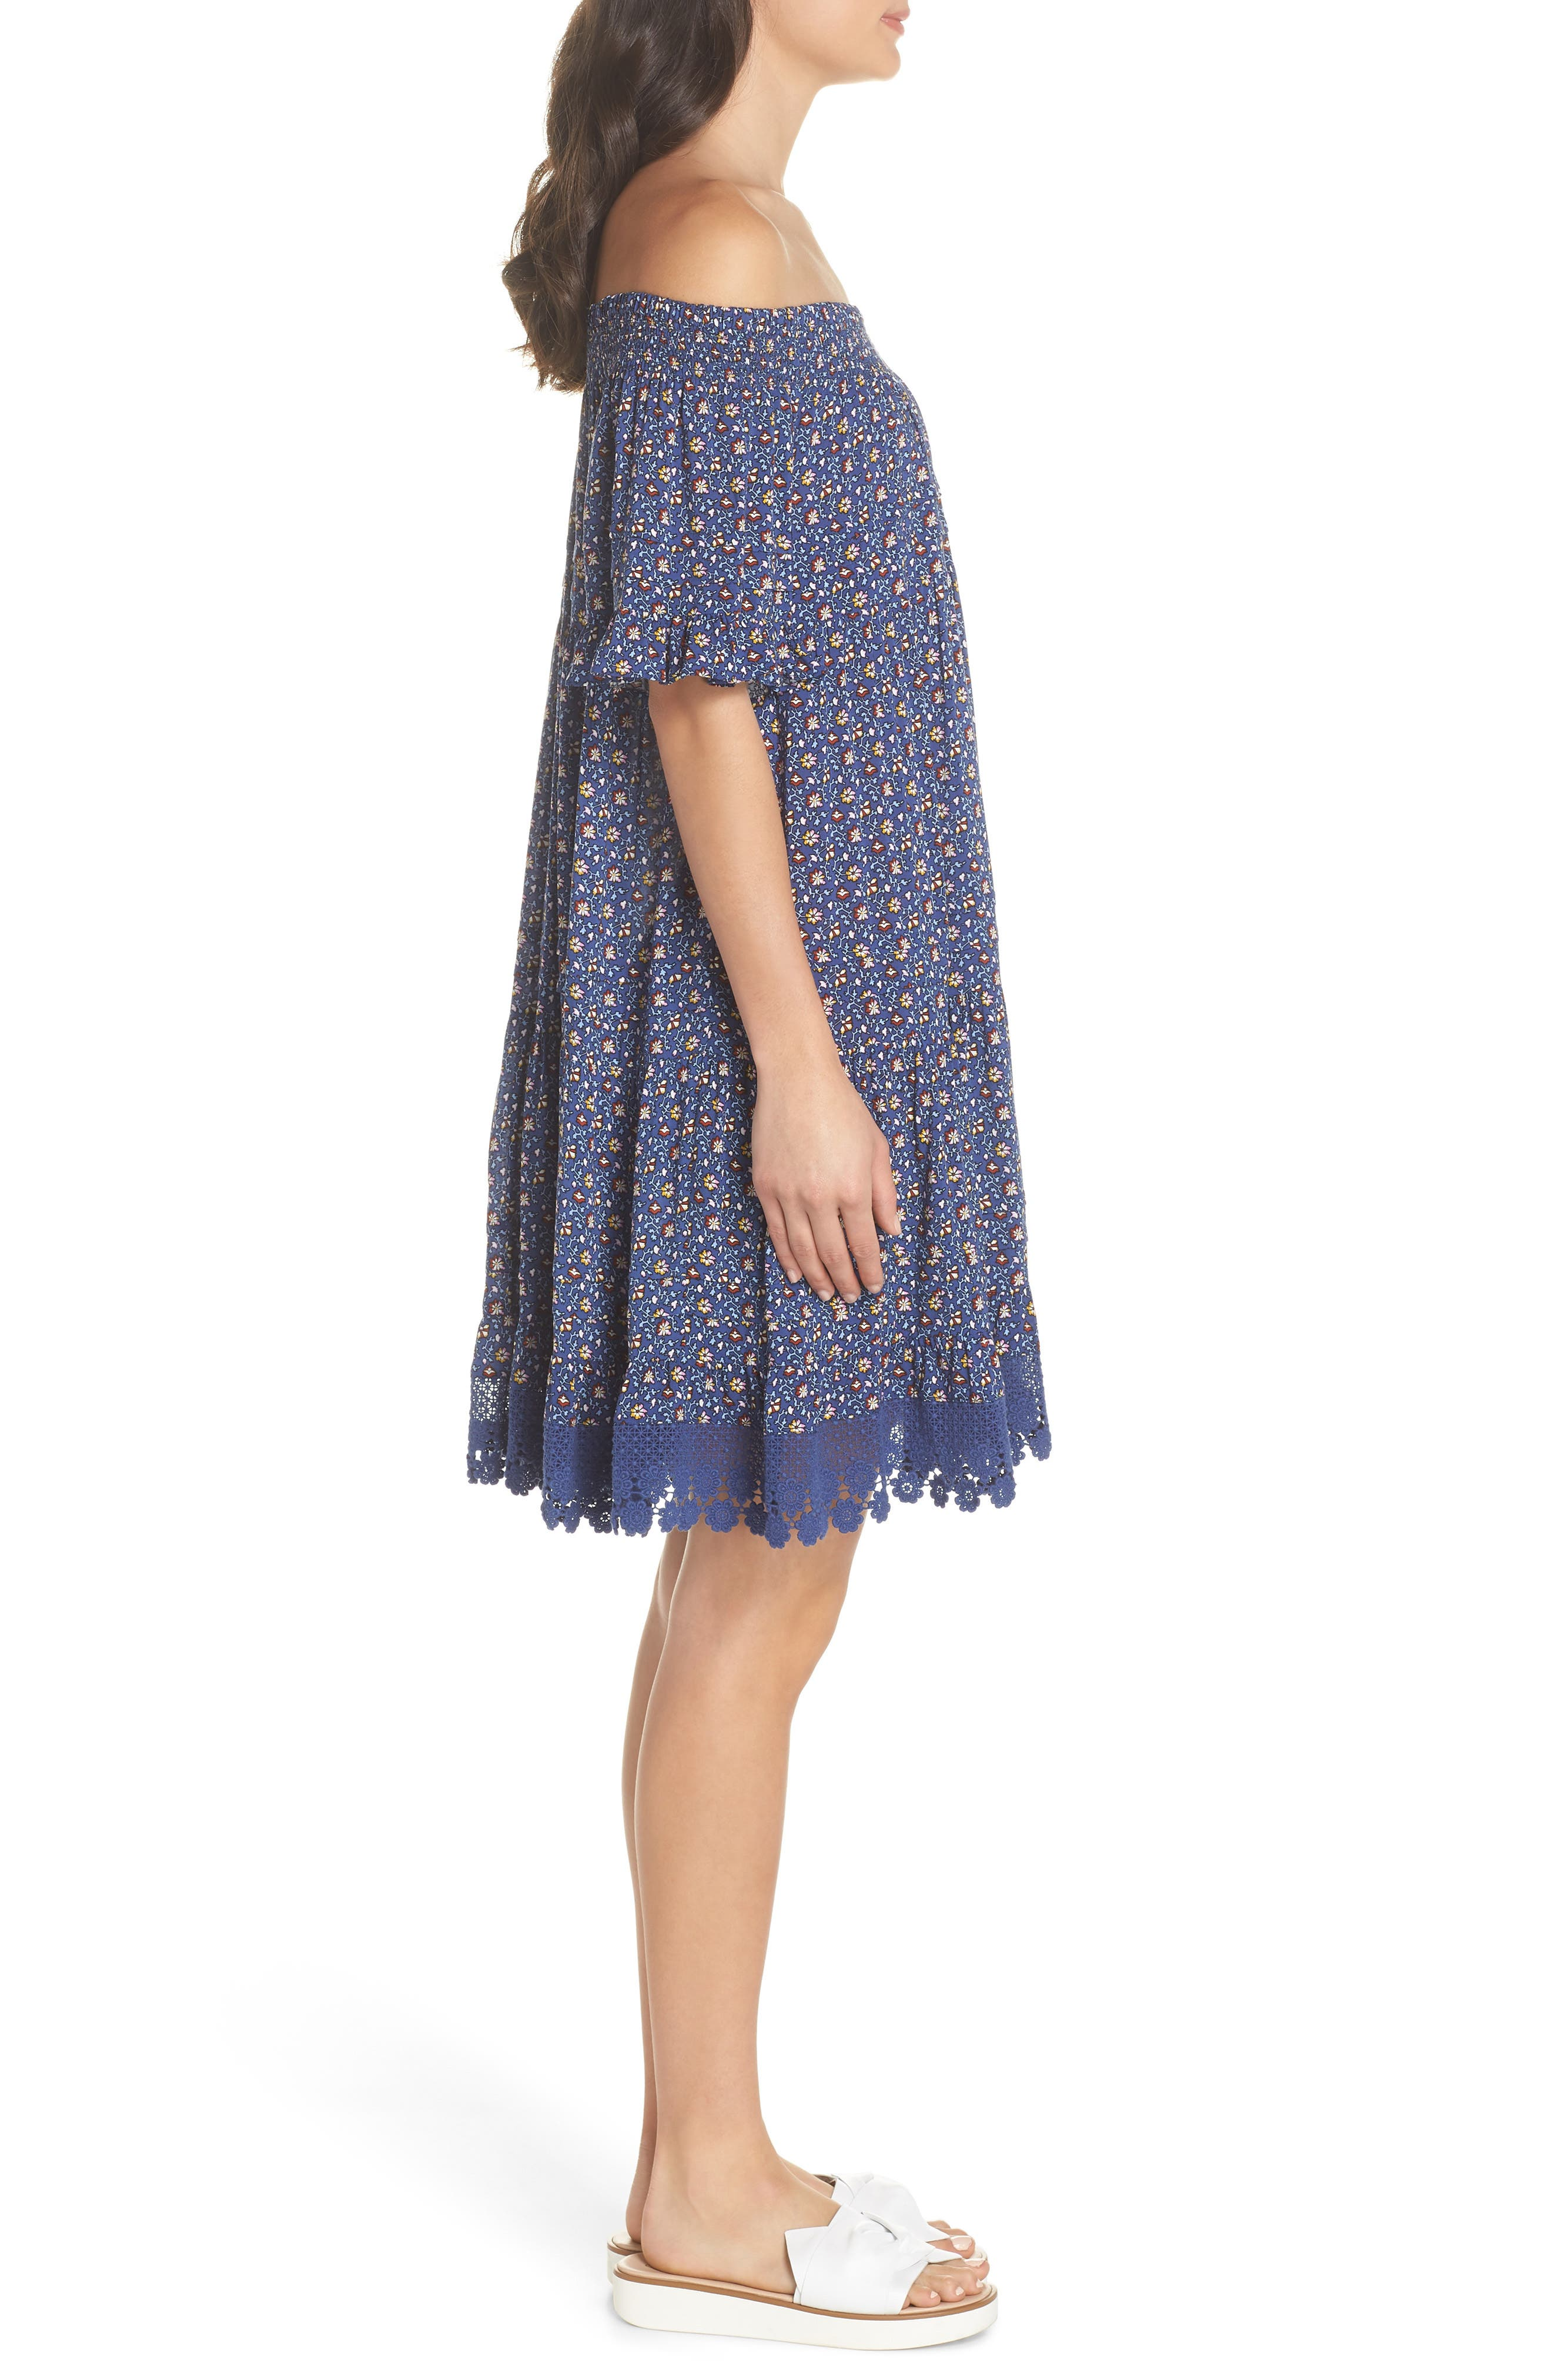 Wild Pansy Off the Shoulder Cover-Up Dress,                             Alternate thumbnail 3, color,                             Navy Wild Pansy